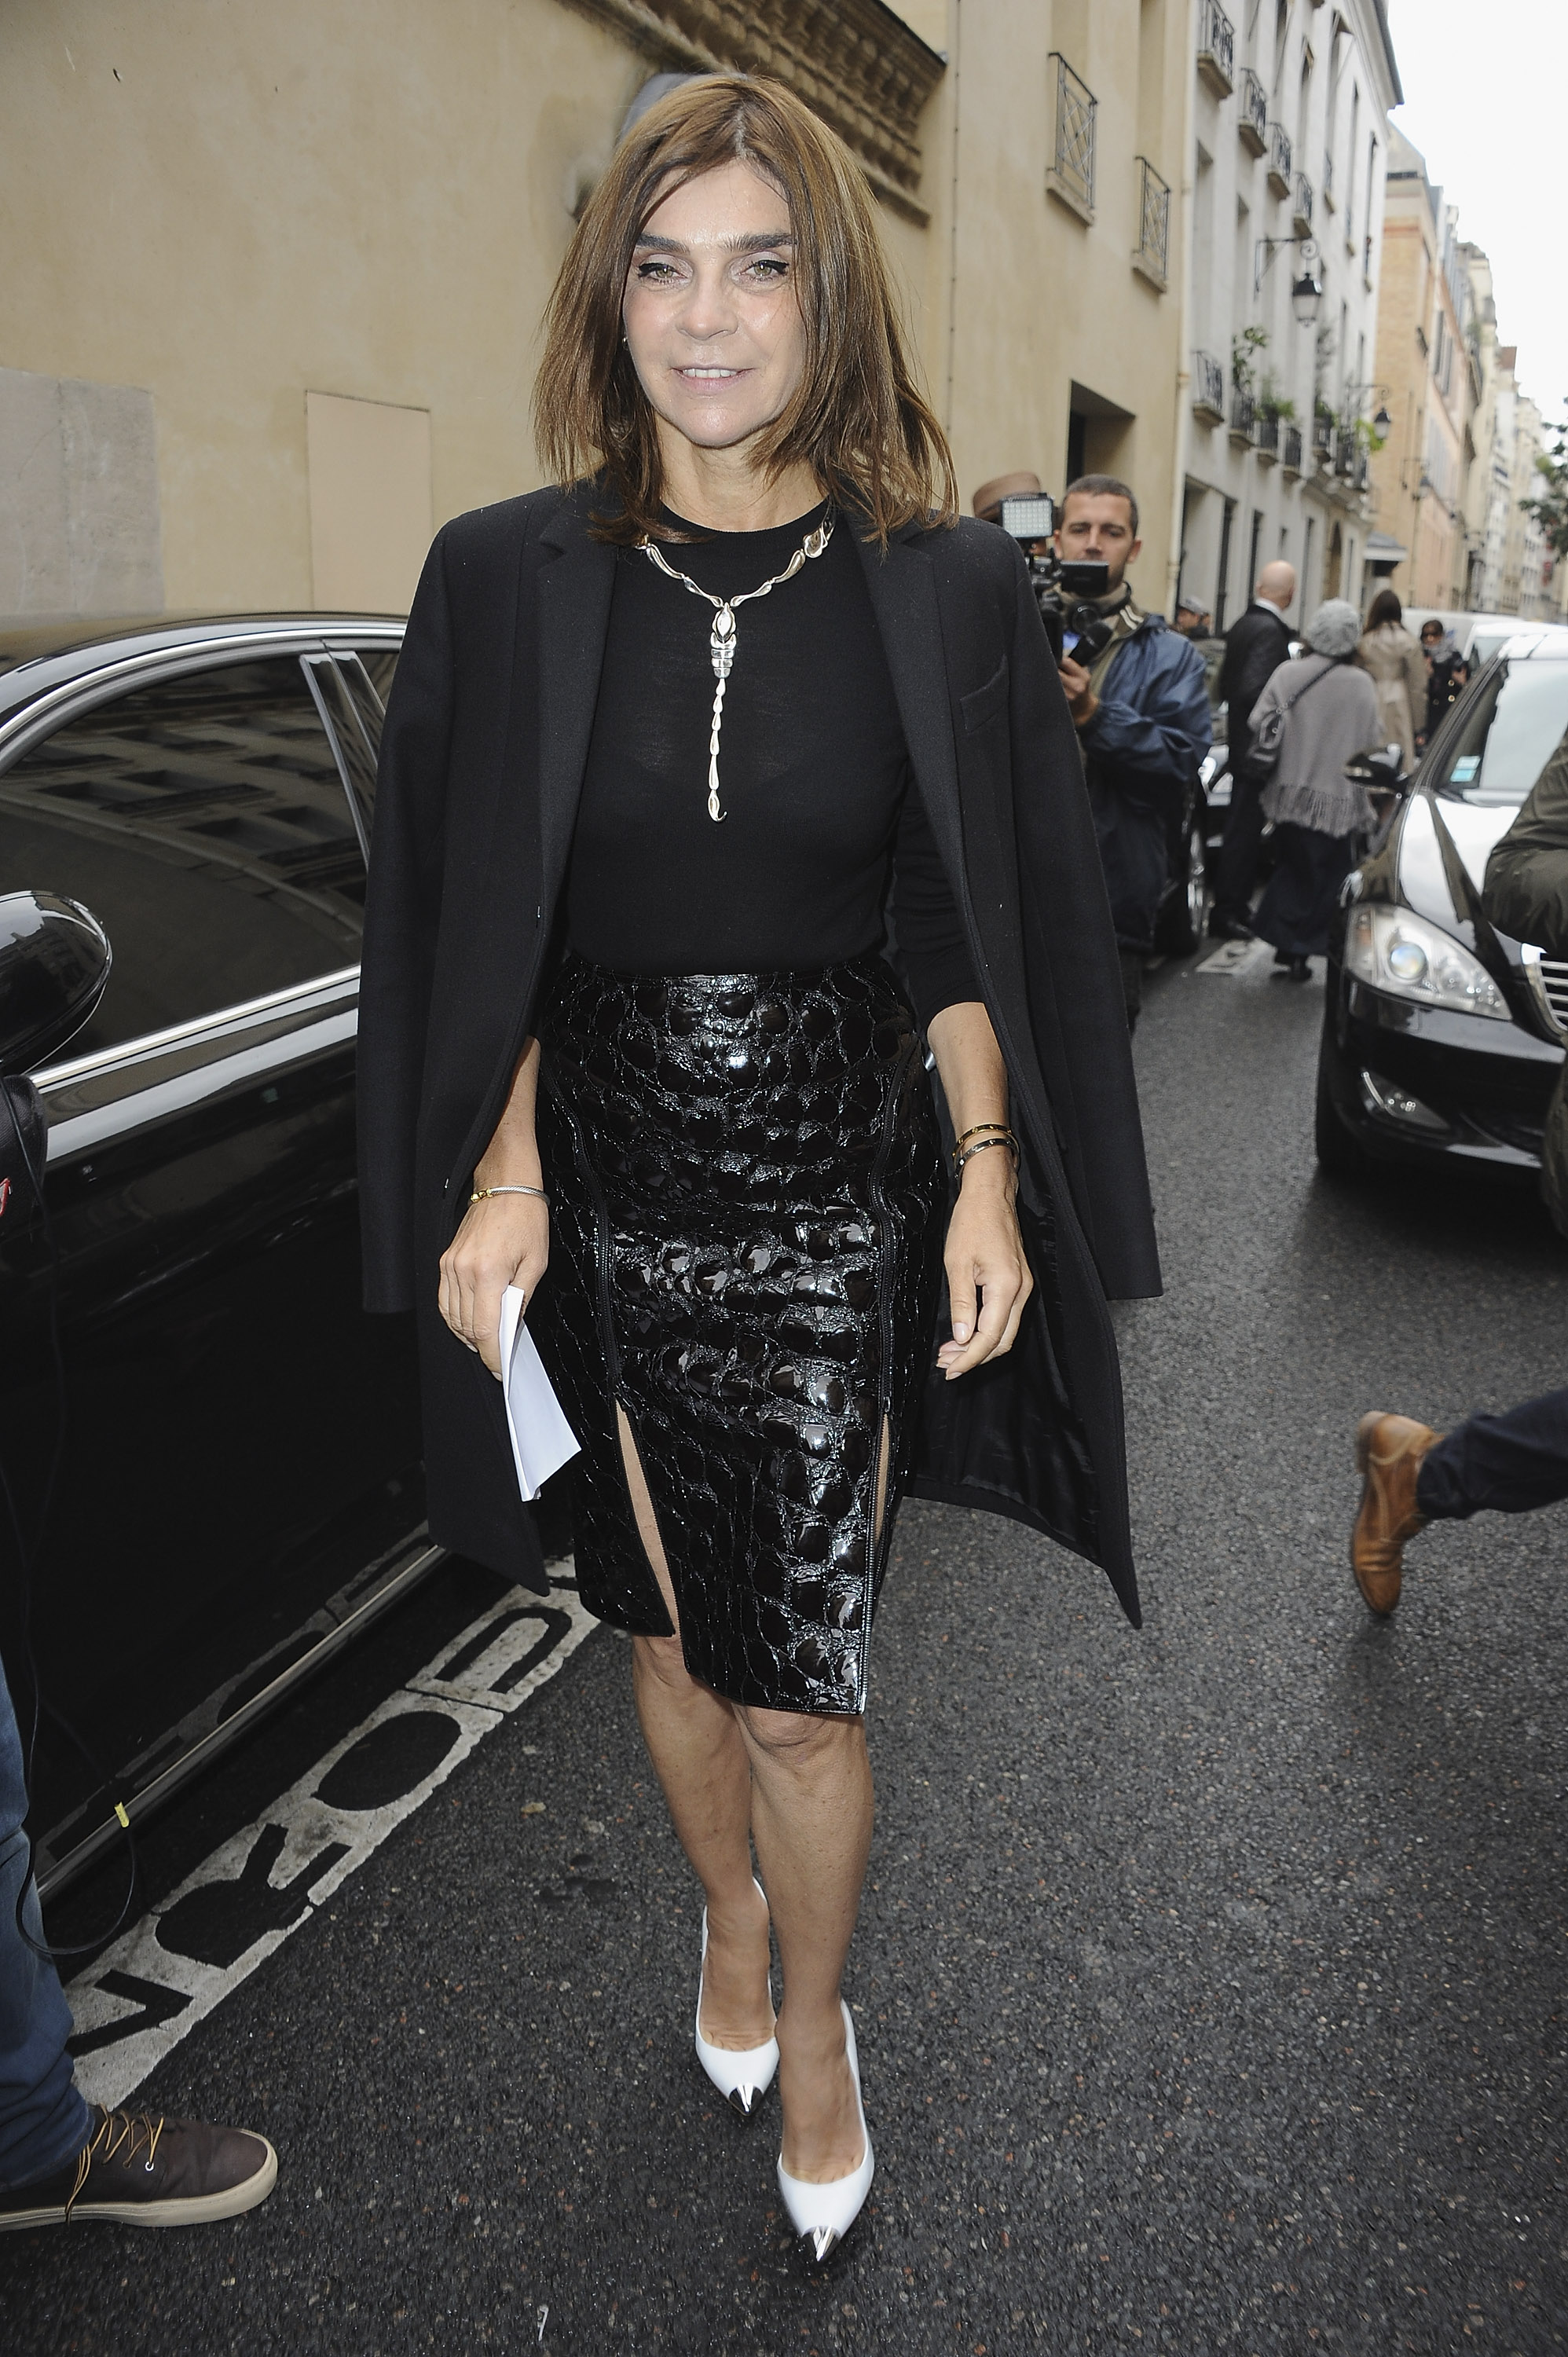 At Balmain in Paris, Carine Roitfeld did the jacket-on-the-shoulders thing so well, but this time around, we